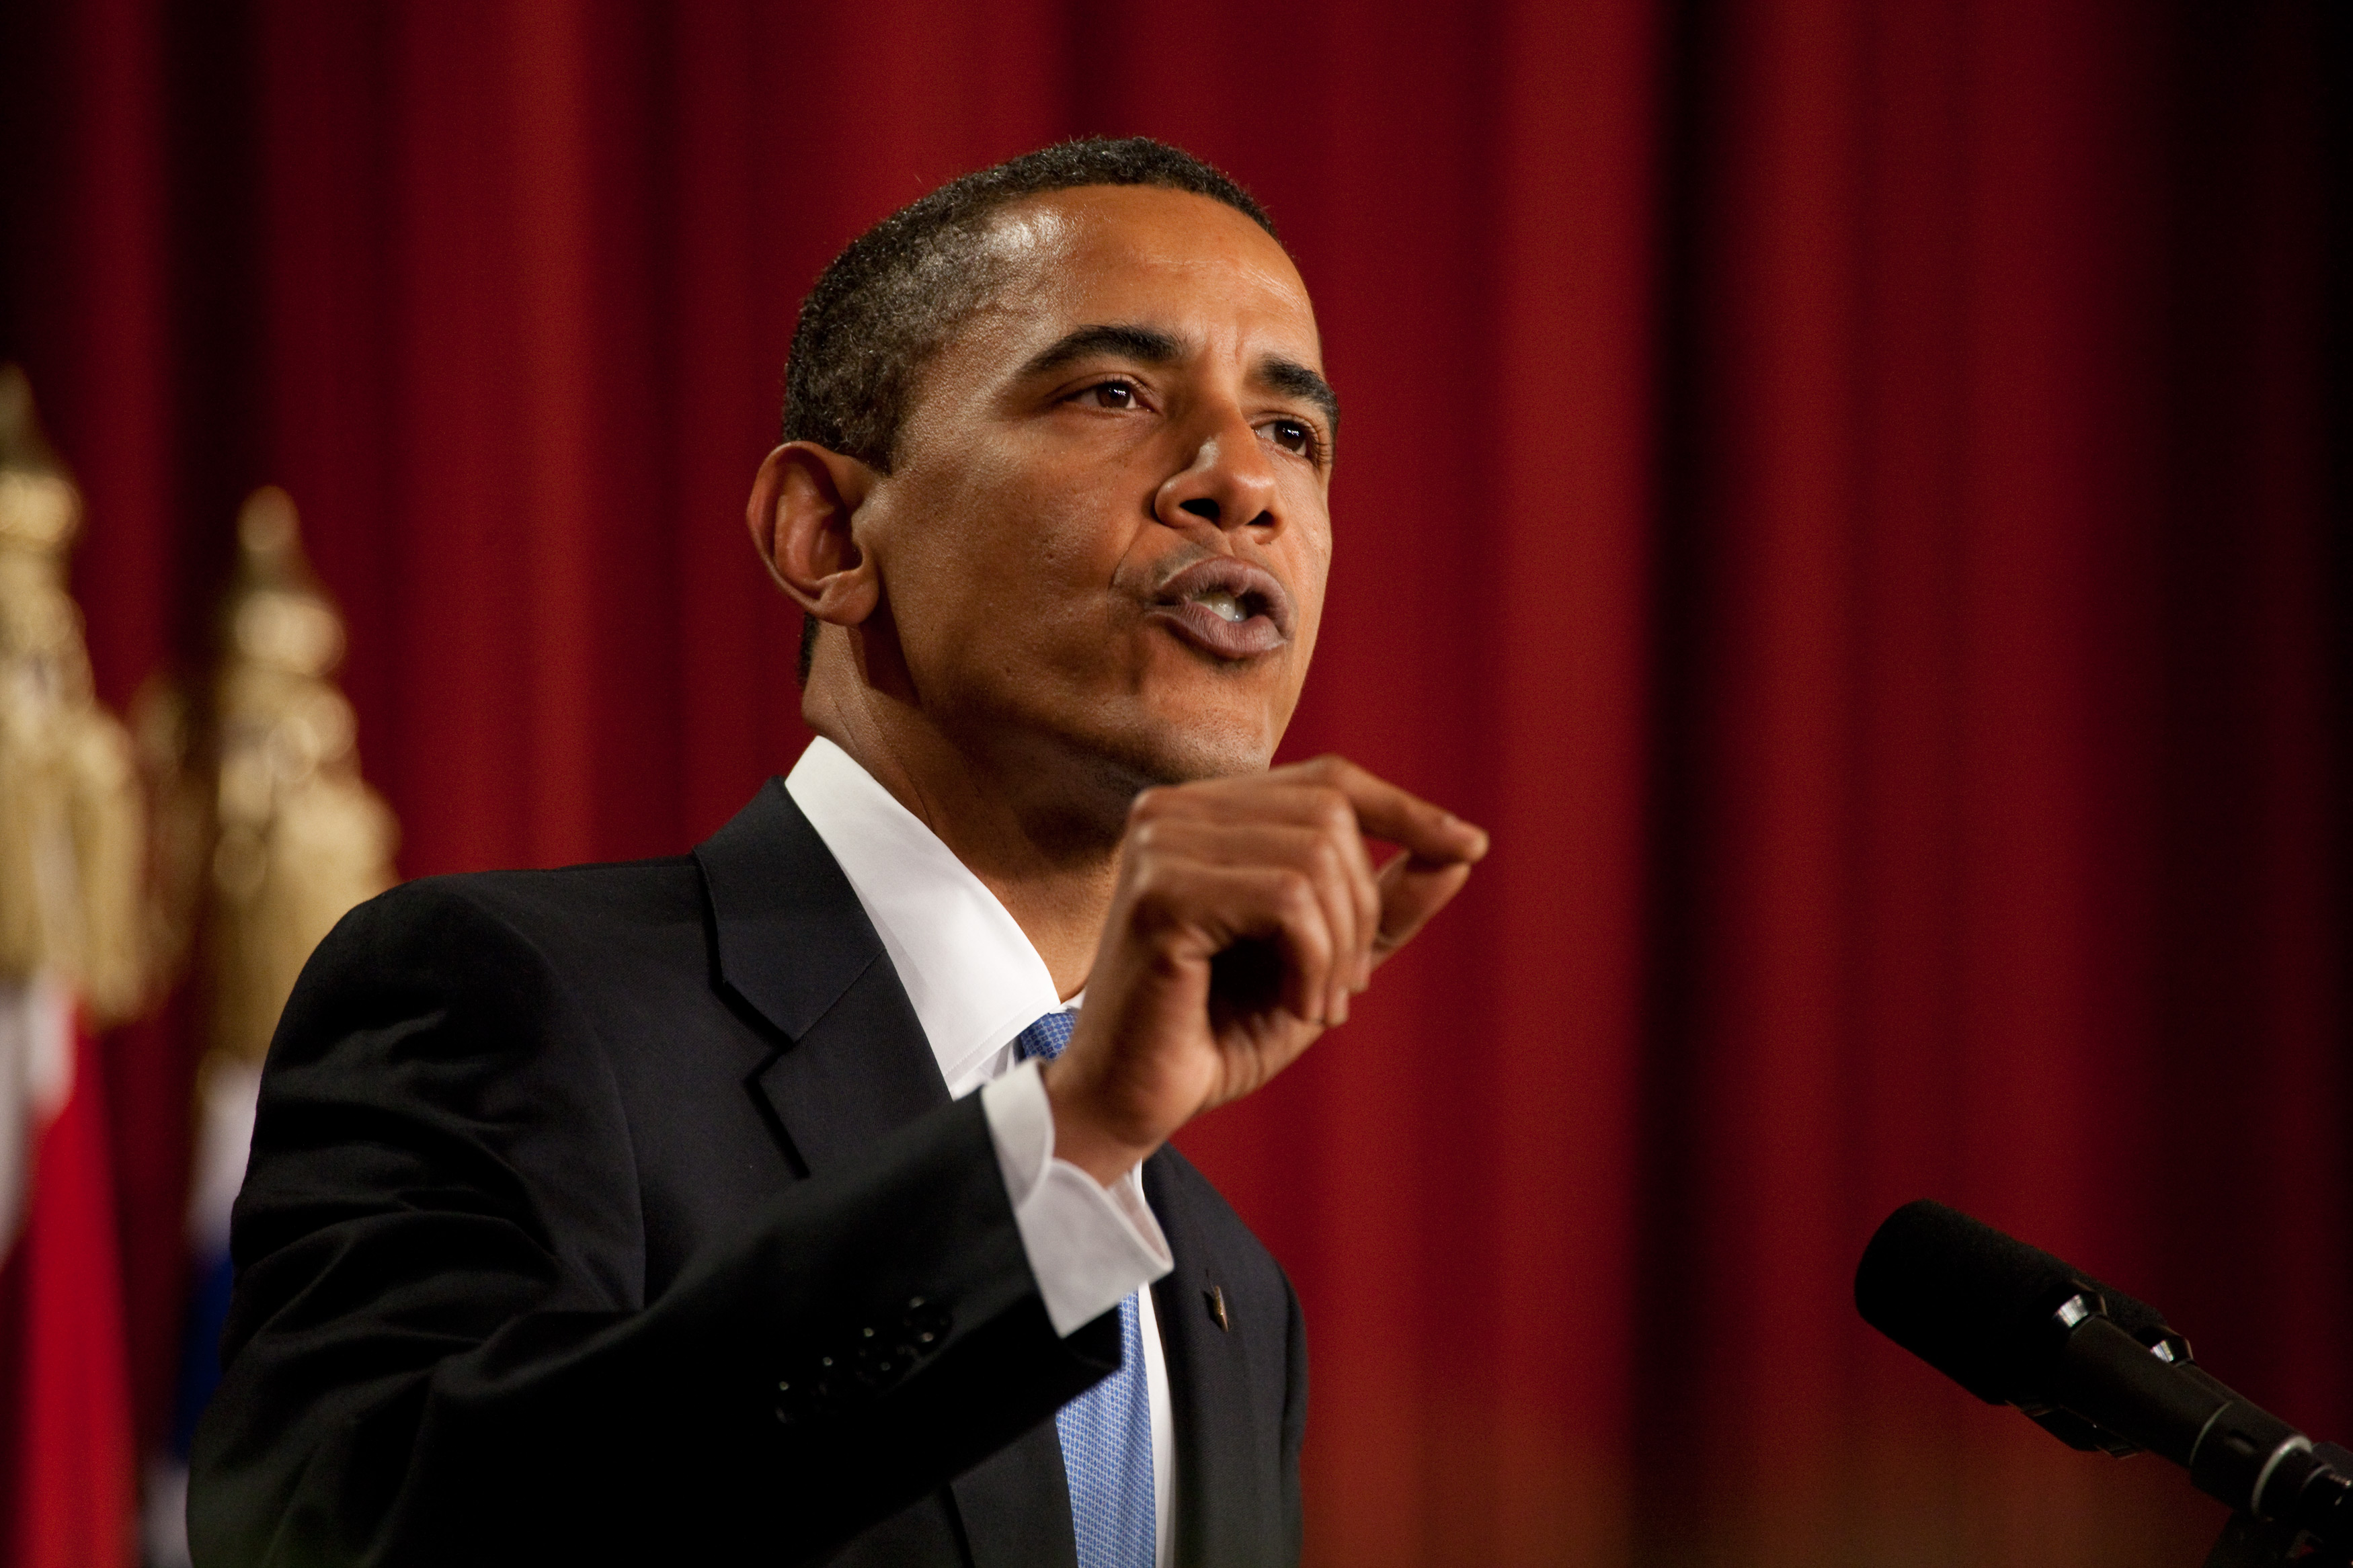 What's SHU doing? Rival school snags Obama to speak